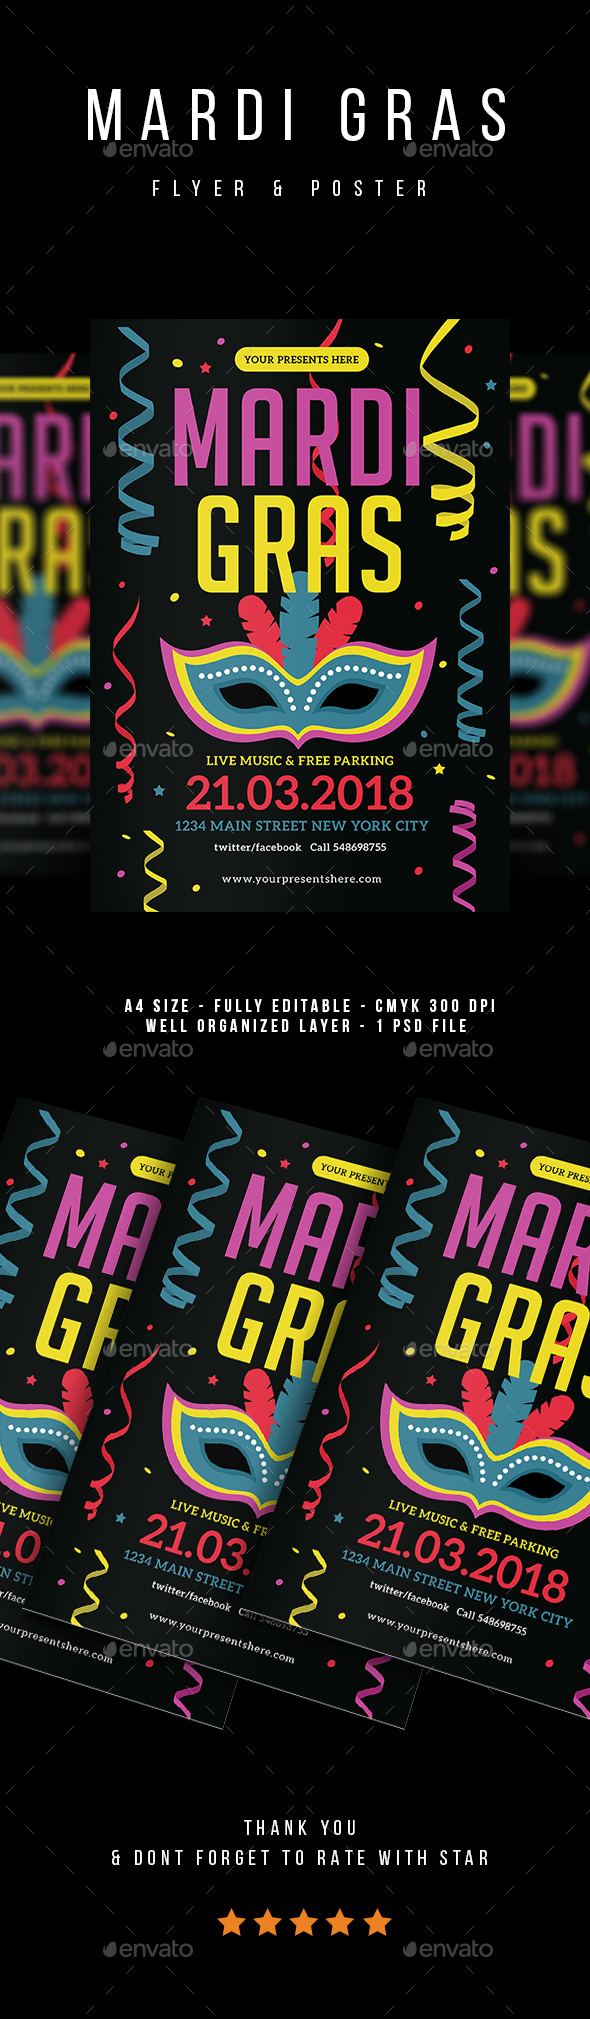 Mardi Gras Flyer vol.3 - Events Flyers